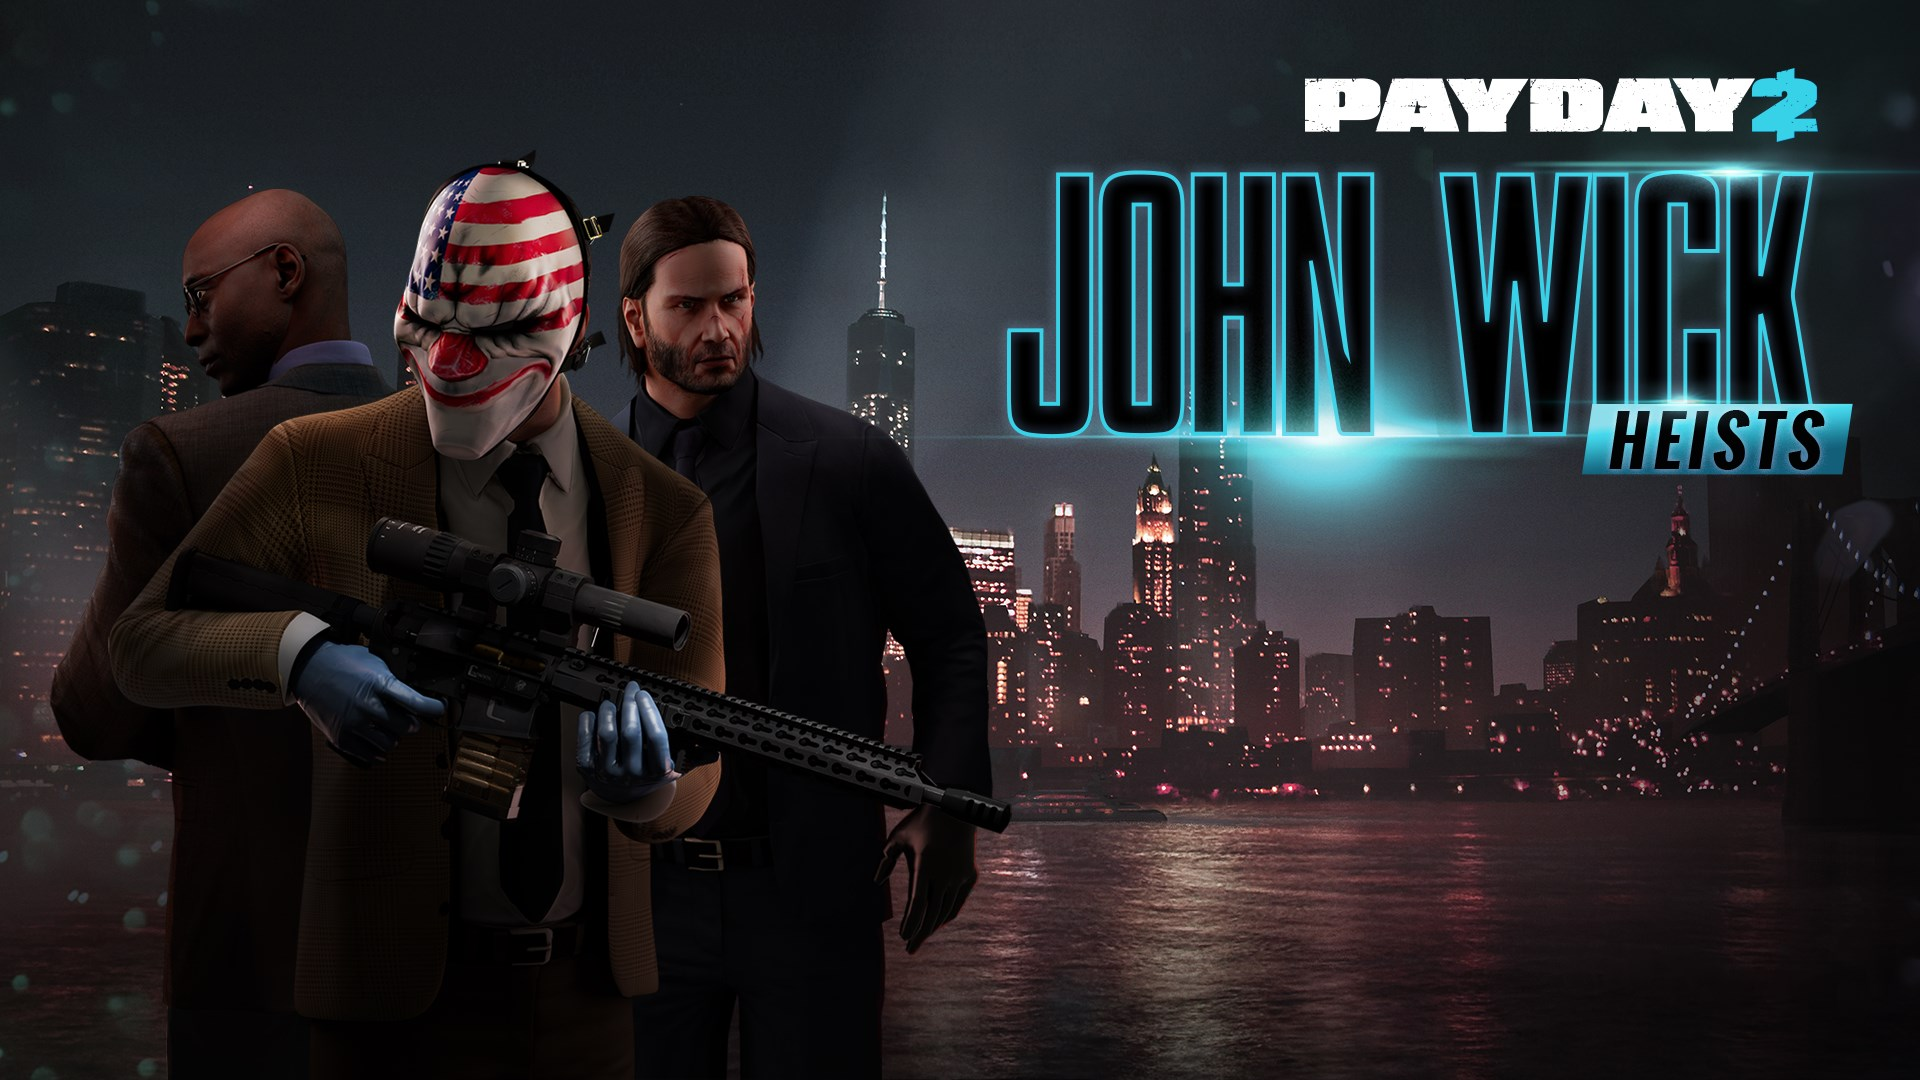 Comprar Payday 2 Crimewave Edition John Wick Heists